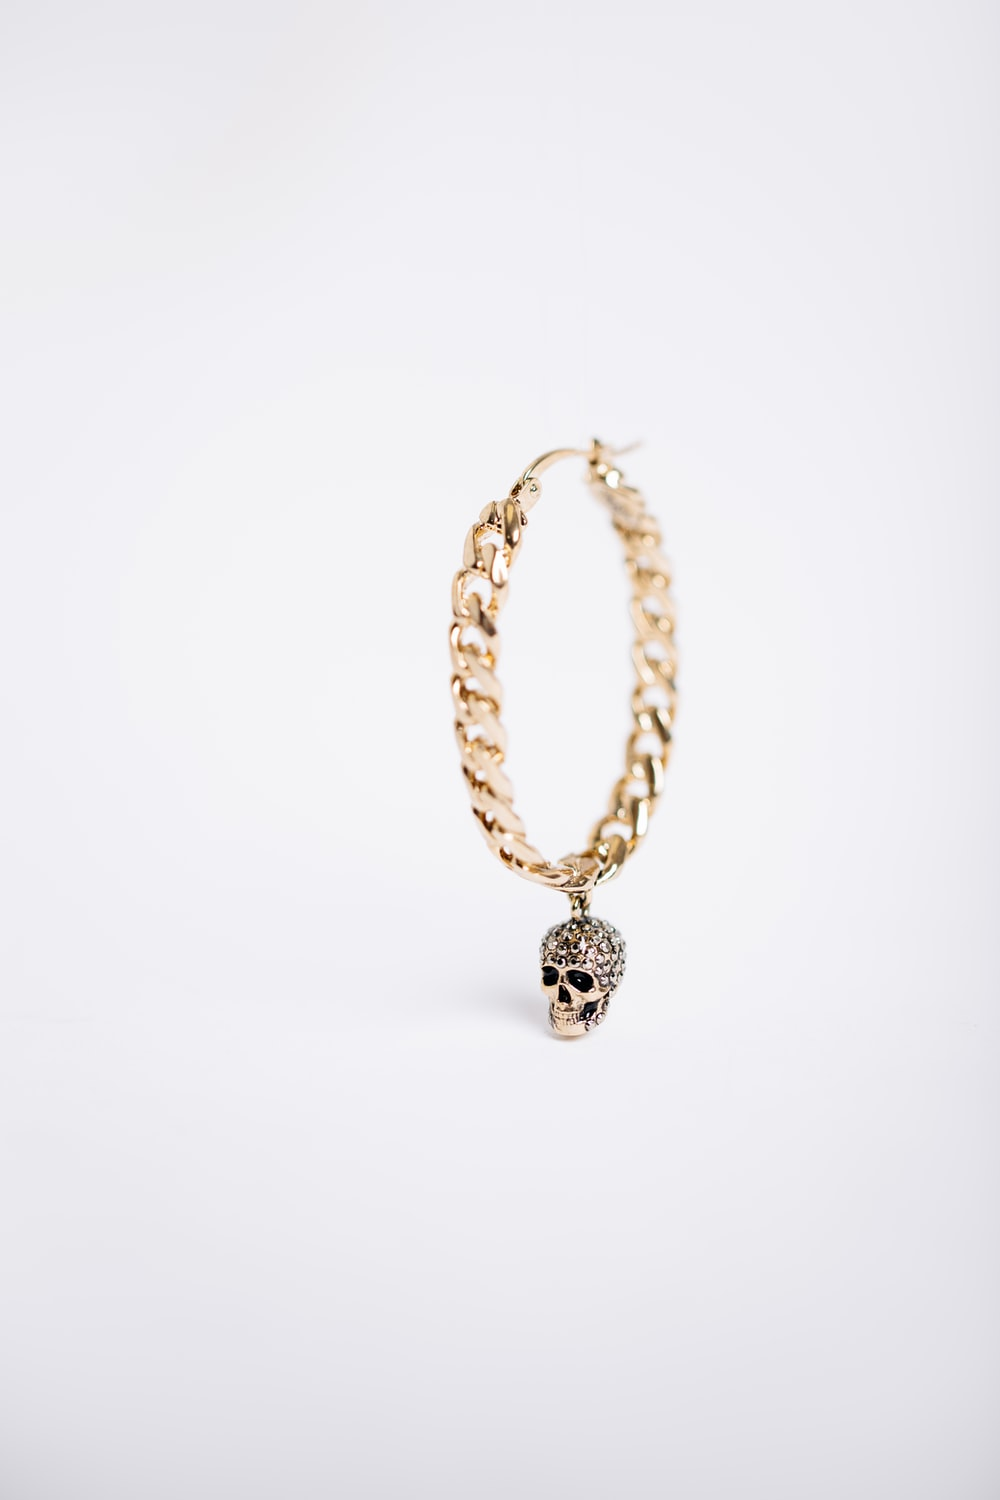 gold-colored skull charm earring